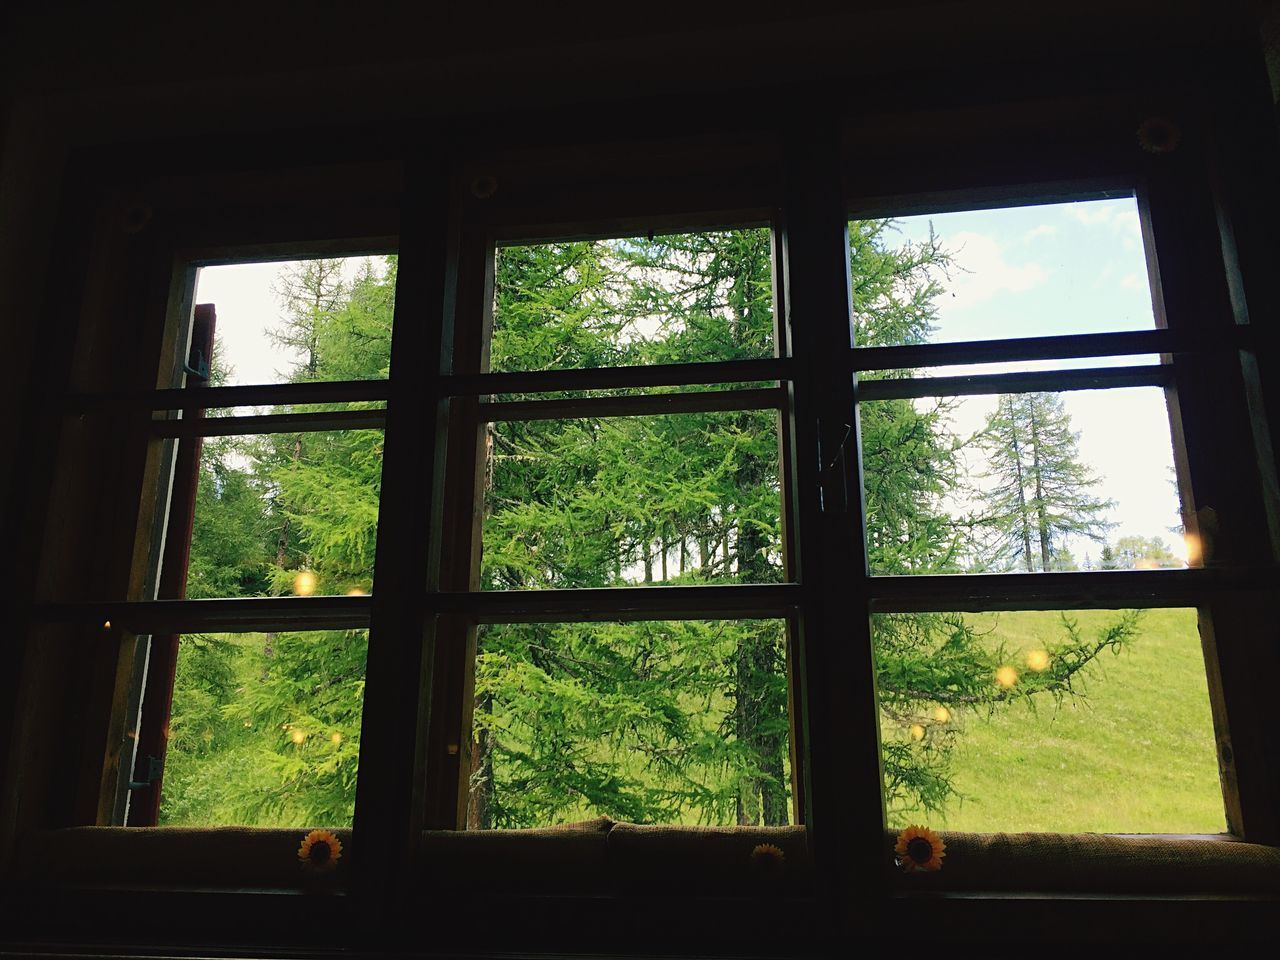 window, indoors, glass - material, tree, day, no people, green color, home interior, nature, growth, architecture, close-up